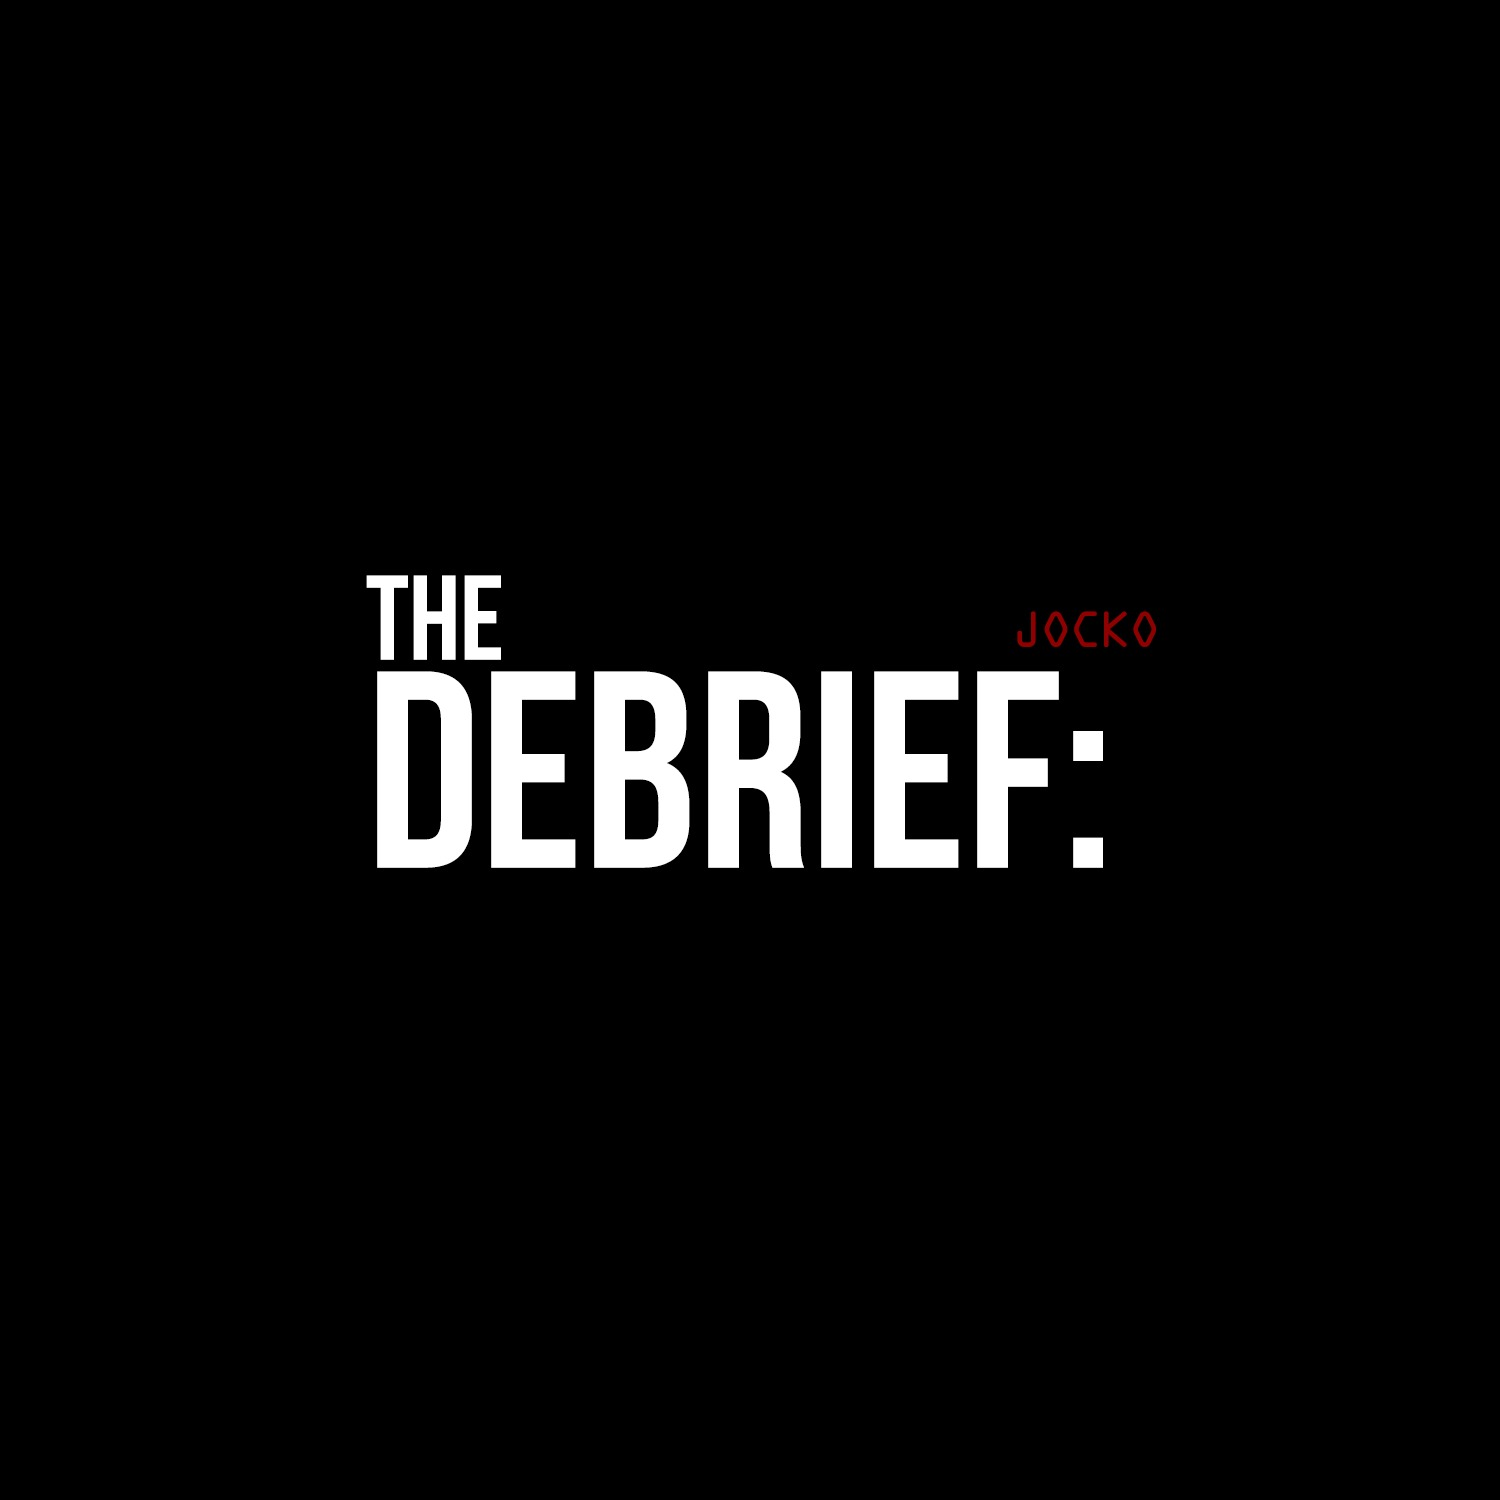 The Debrief w/ Jocko and Dave Berke #20: How To Get a New Team On Track as a New Leader. How to Align Departments.